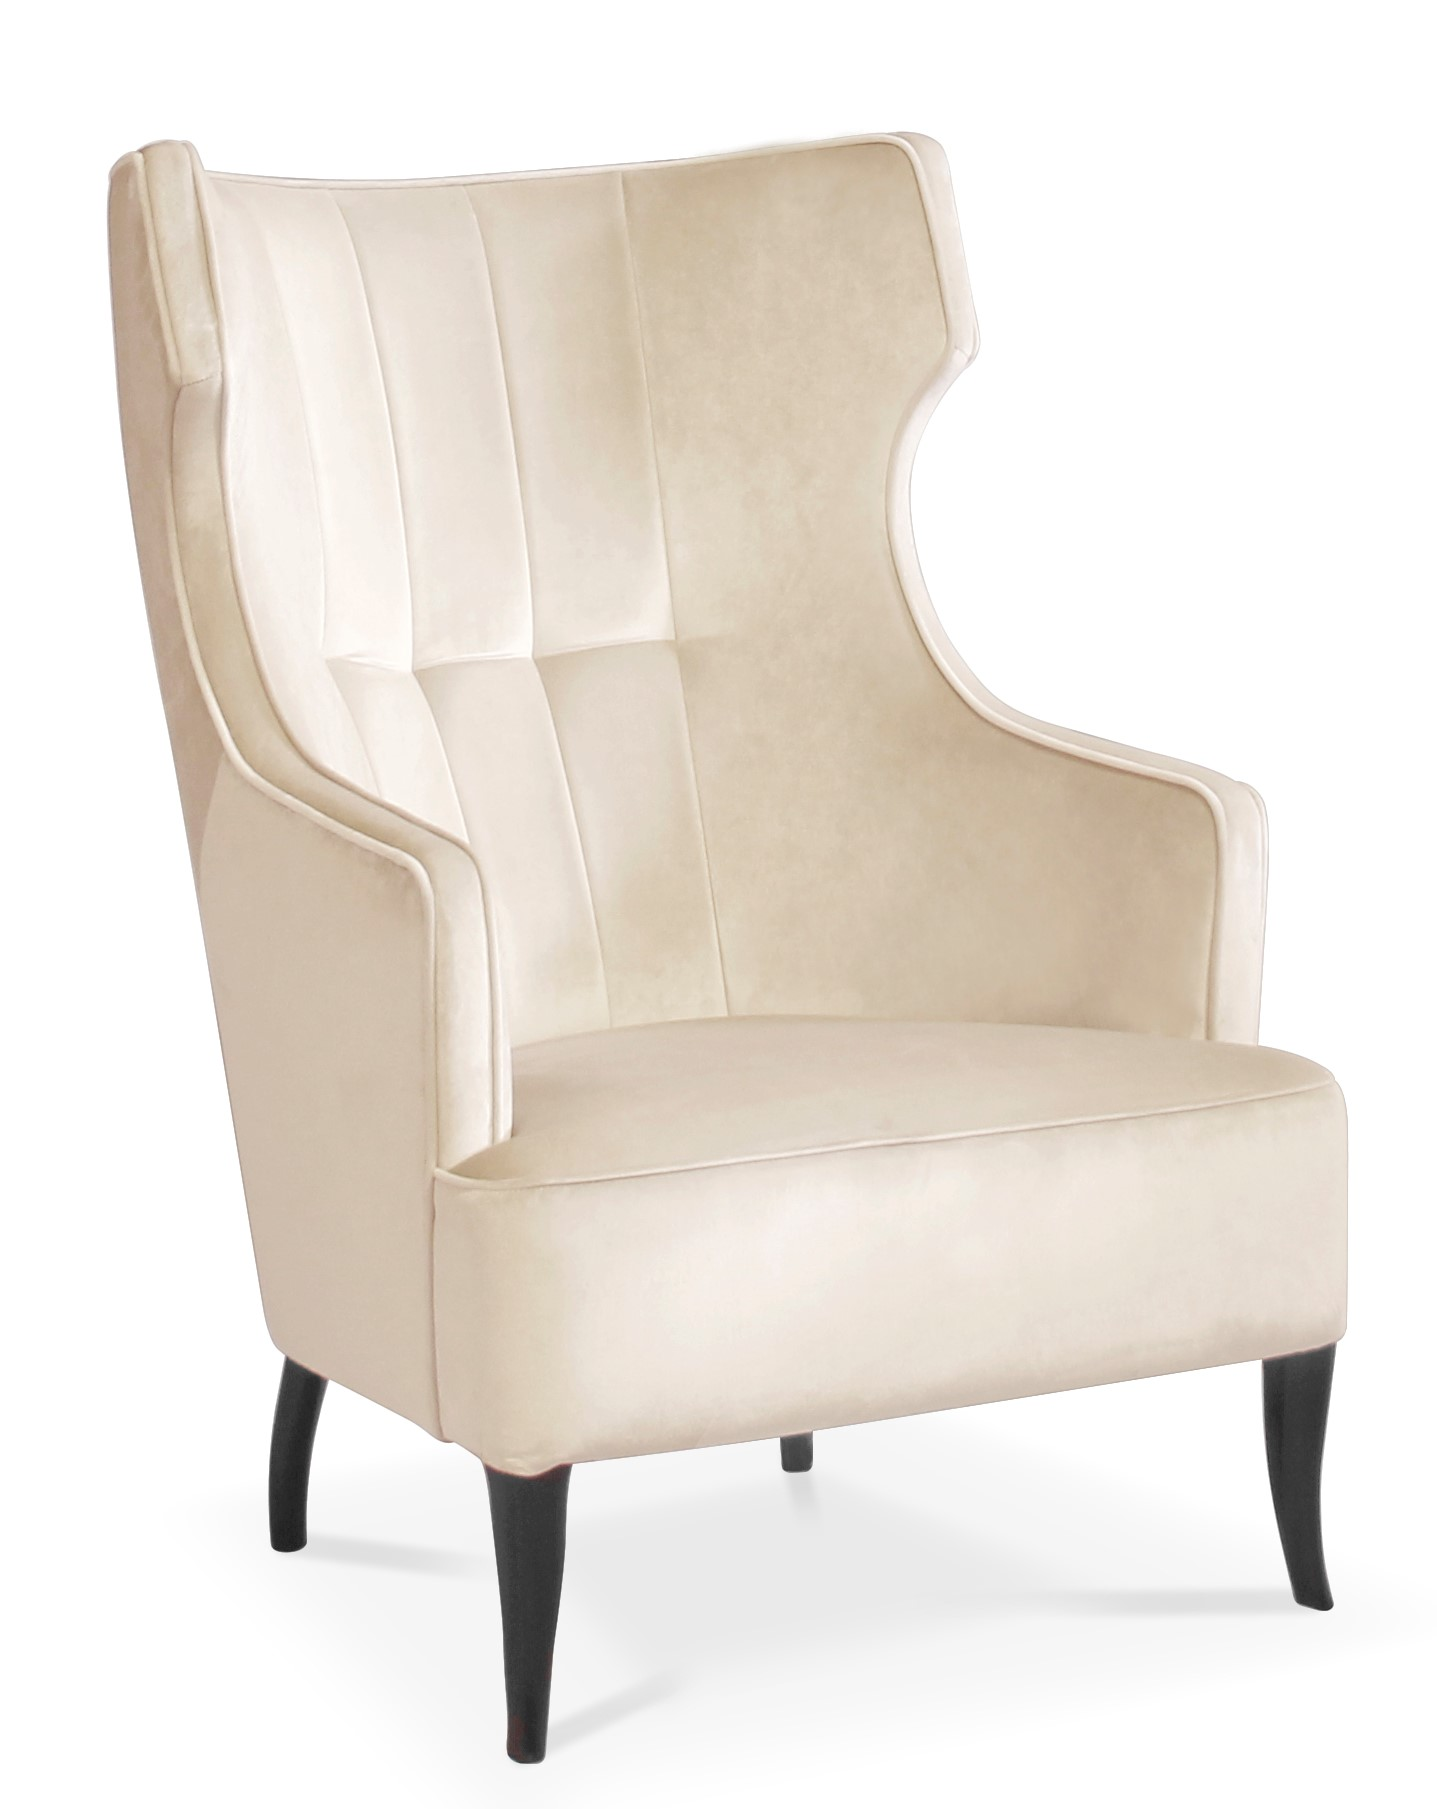 Decorating with neutral colors, neutral colors, bathroom decoration, bathroom inspiration, bathroom ideas, maison valentina decorating with neutral colors Decorating With Neutral Colors – Find here the Top Products! iguazu armchair 2 maison valentina